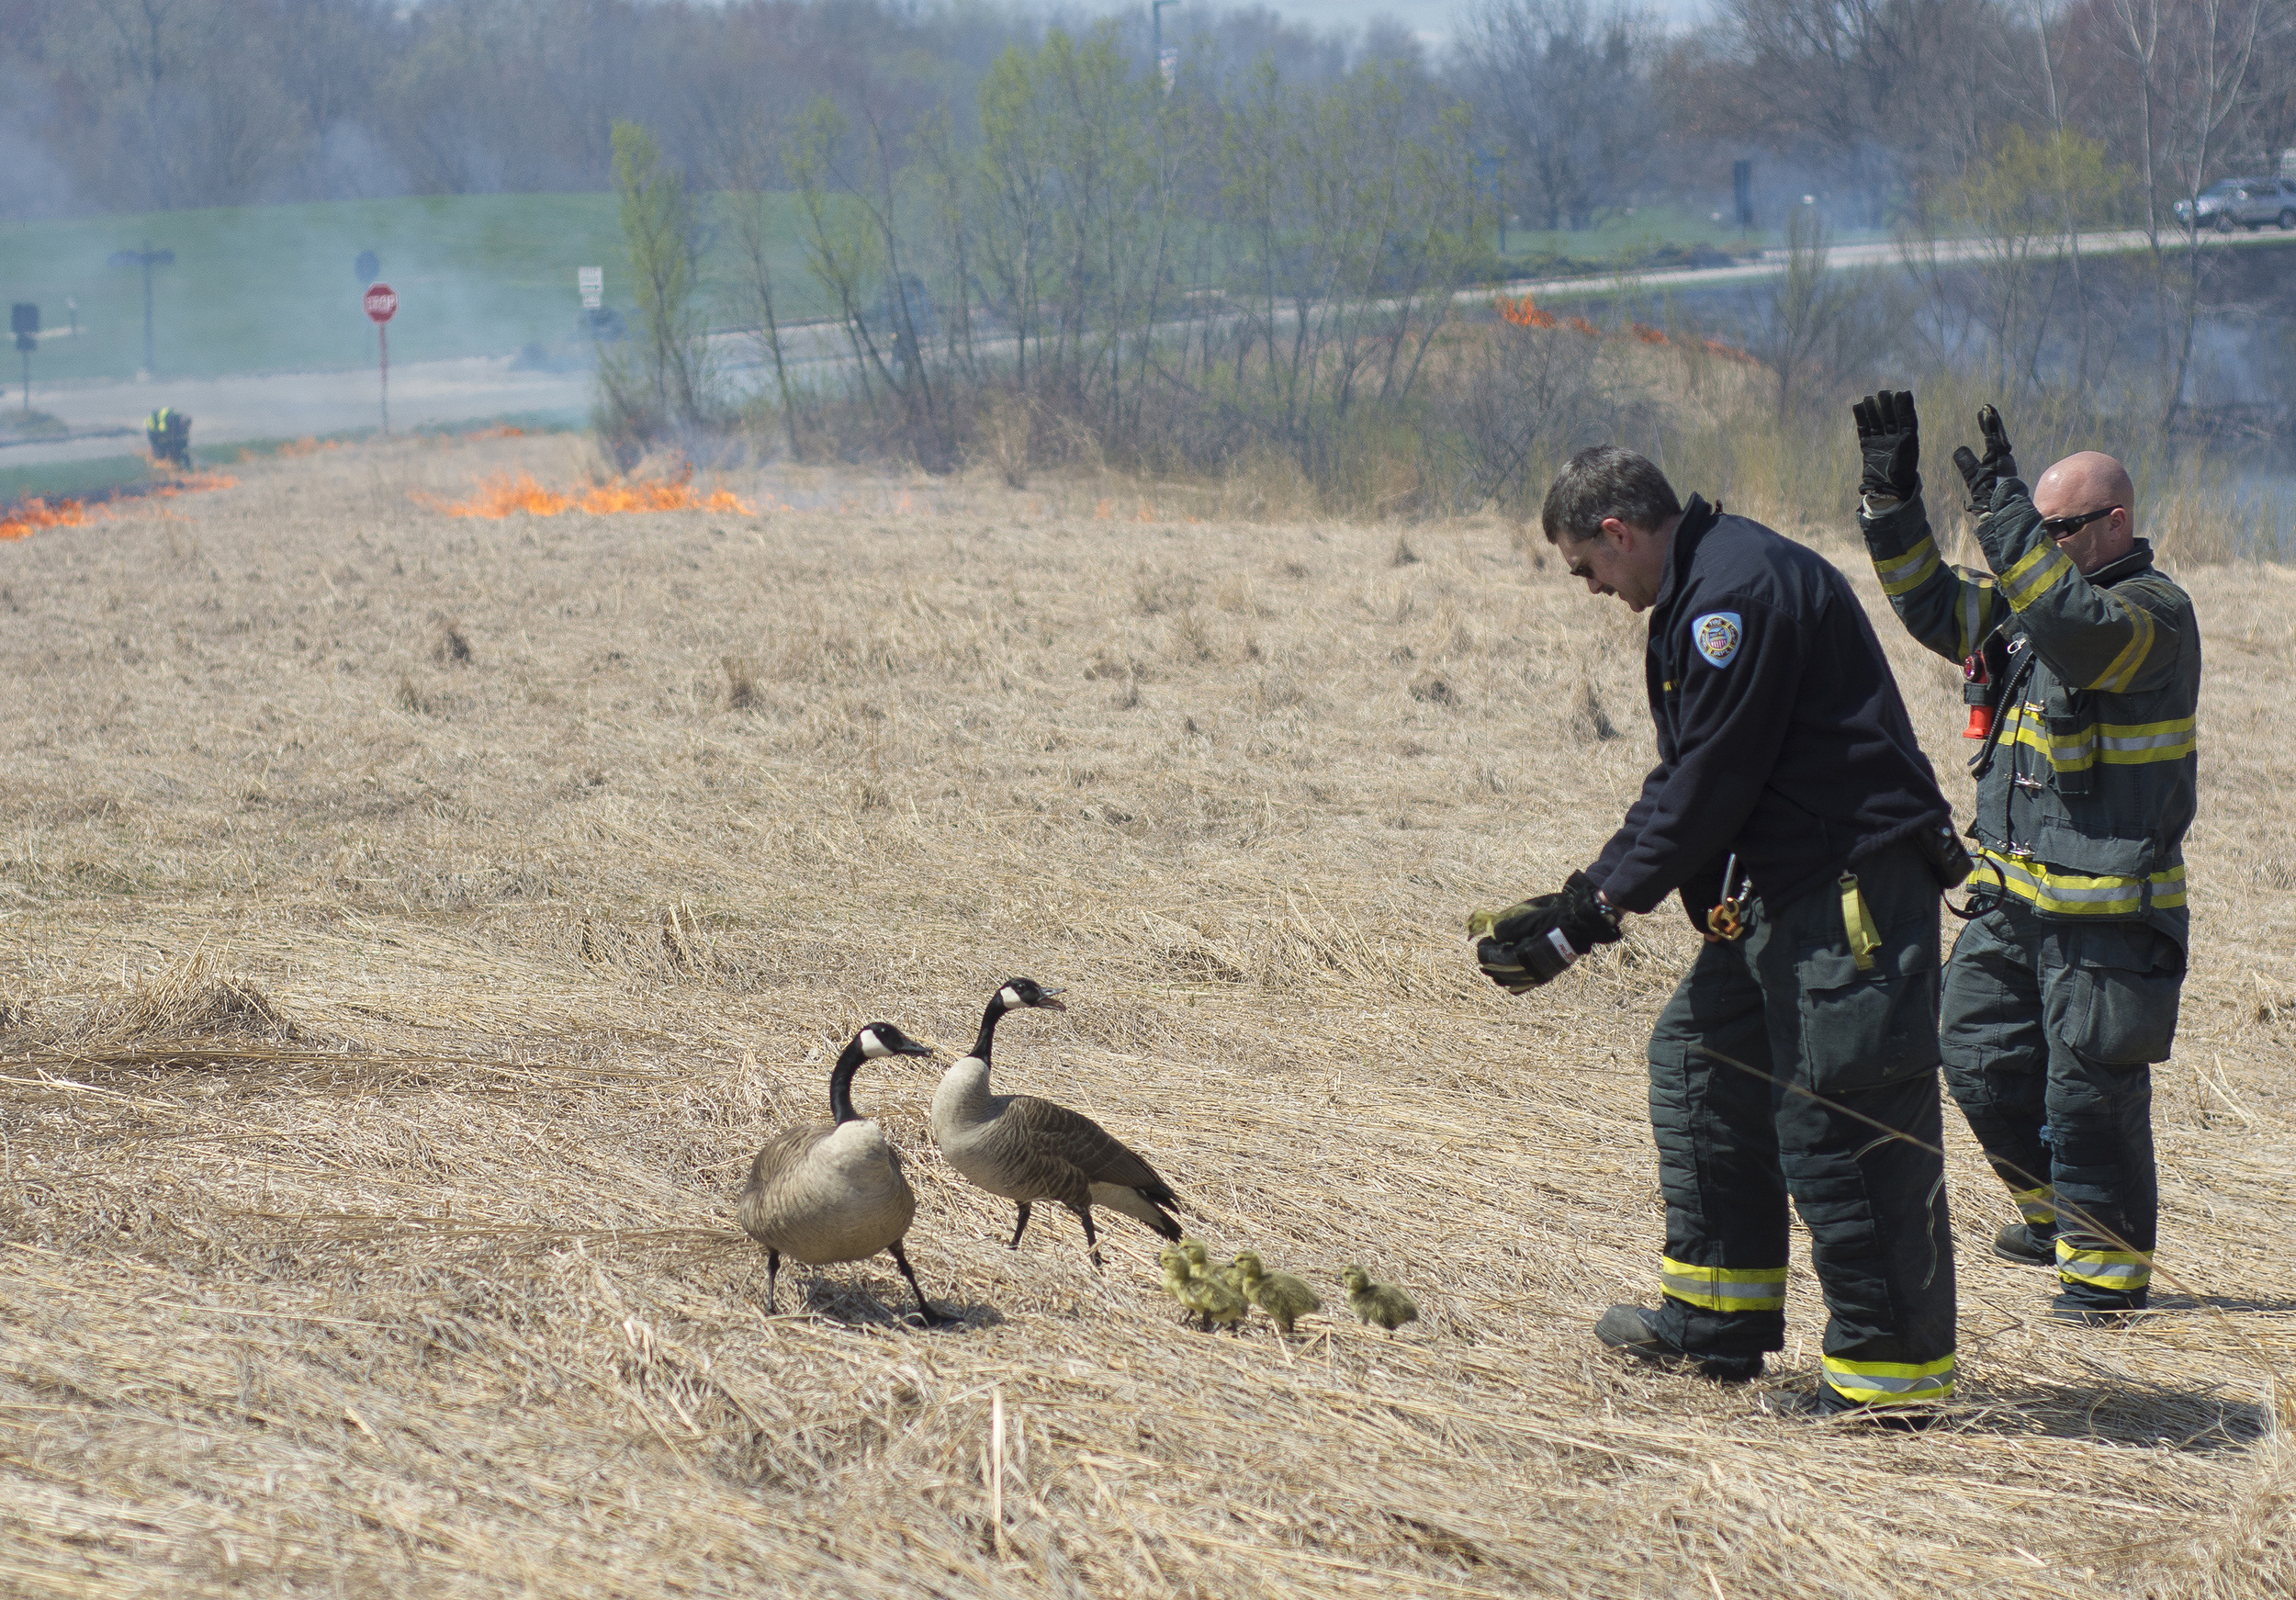 Two firefighters from the Kent Fire Department help a family of geese out of the prairie grass being burned behind the Student Recreation and Wellness Center on April 28, 2015. The controlled prairie fire is done annually by the fire department to naturally control the growth of the prairie grasses.